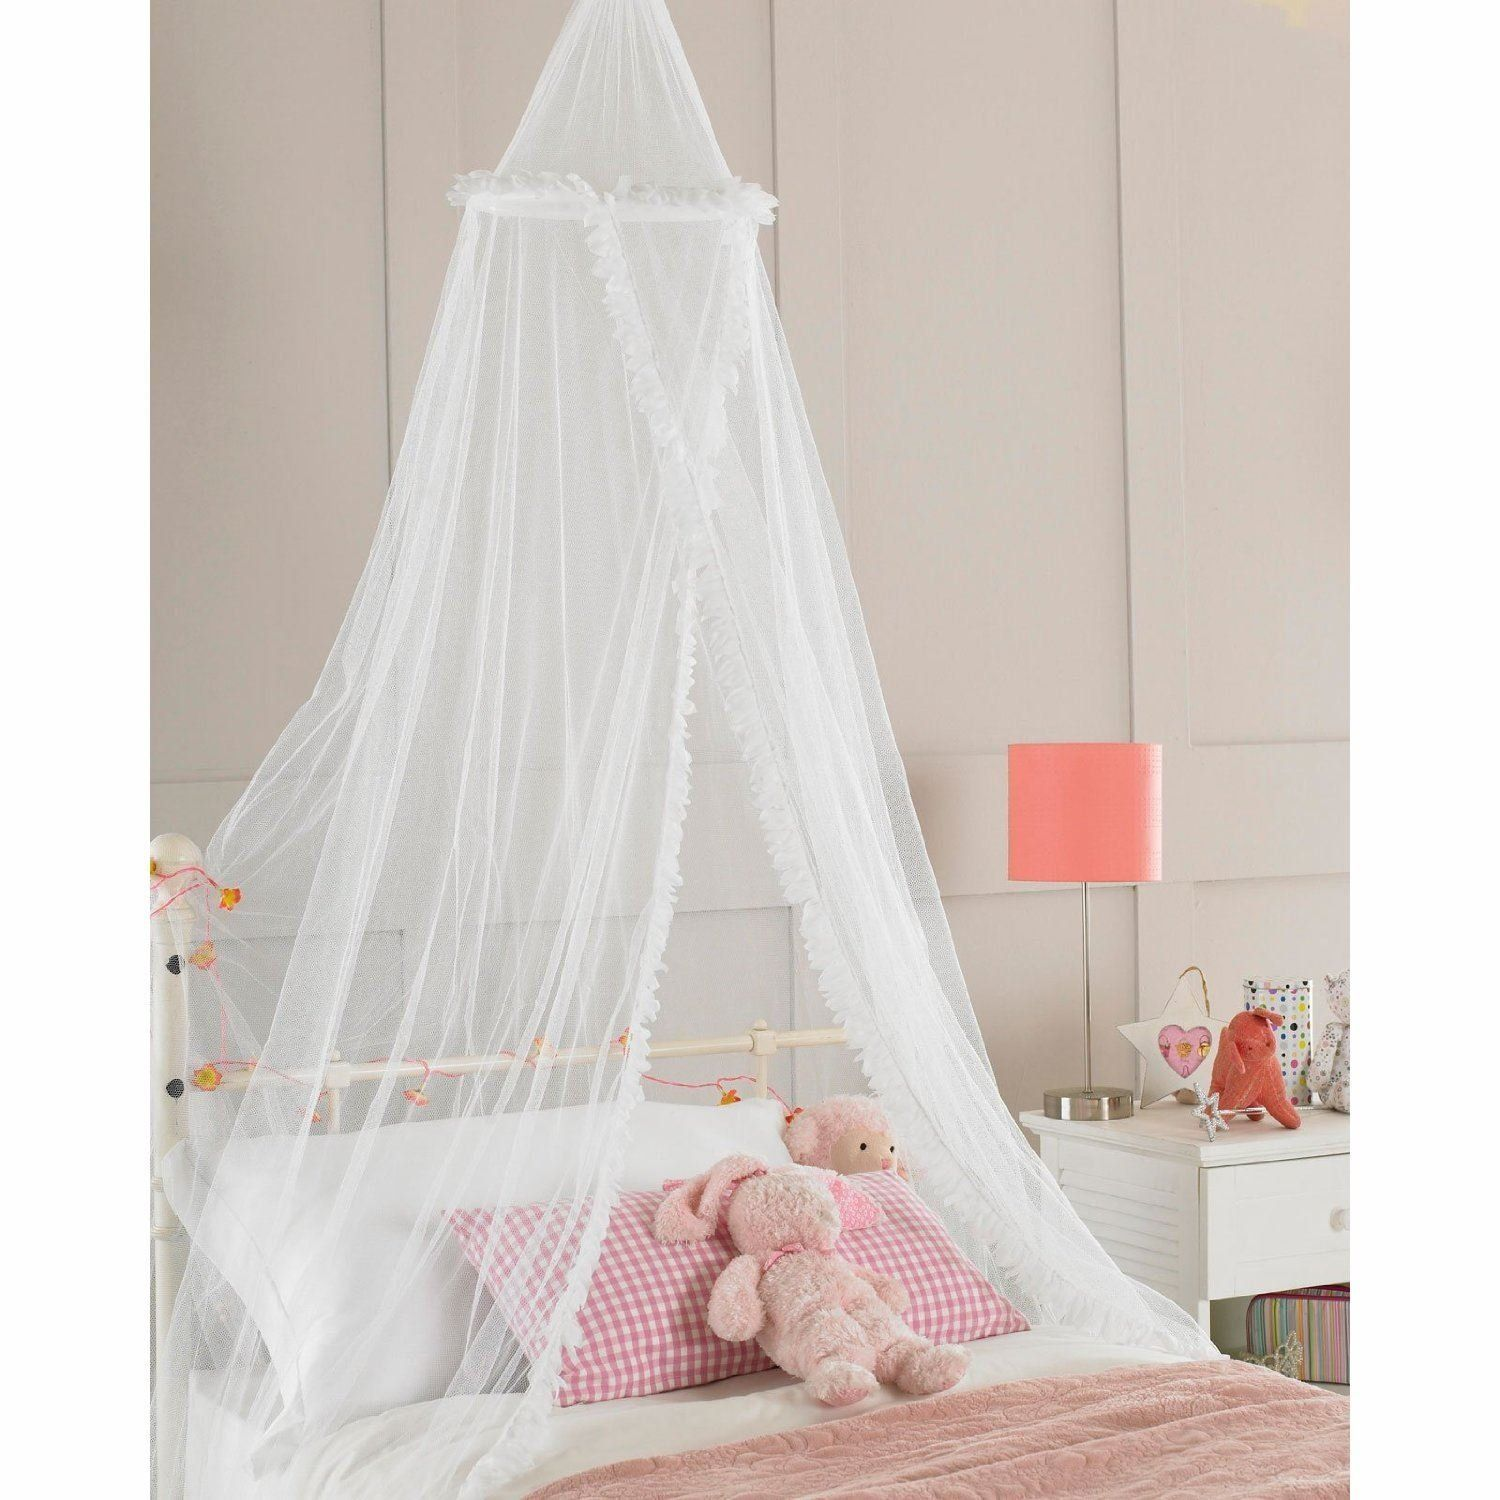 Room · Childrens Girls Bed Canopy ...  sc 1 st  Pinterest & Childrens Girls Bed Canopy Mosquito Fly Netting Net New 30x230cm ...